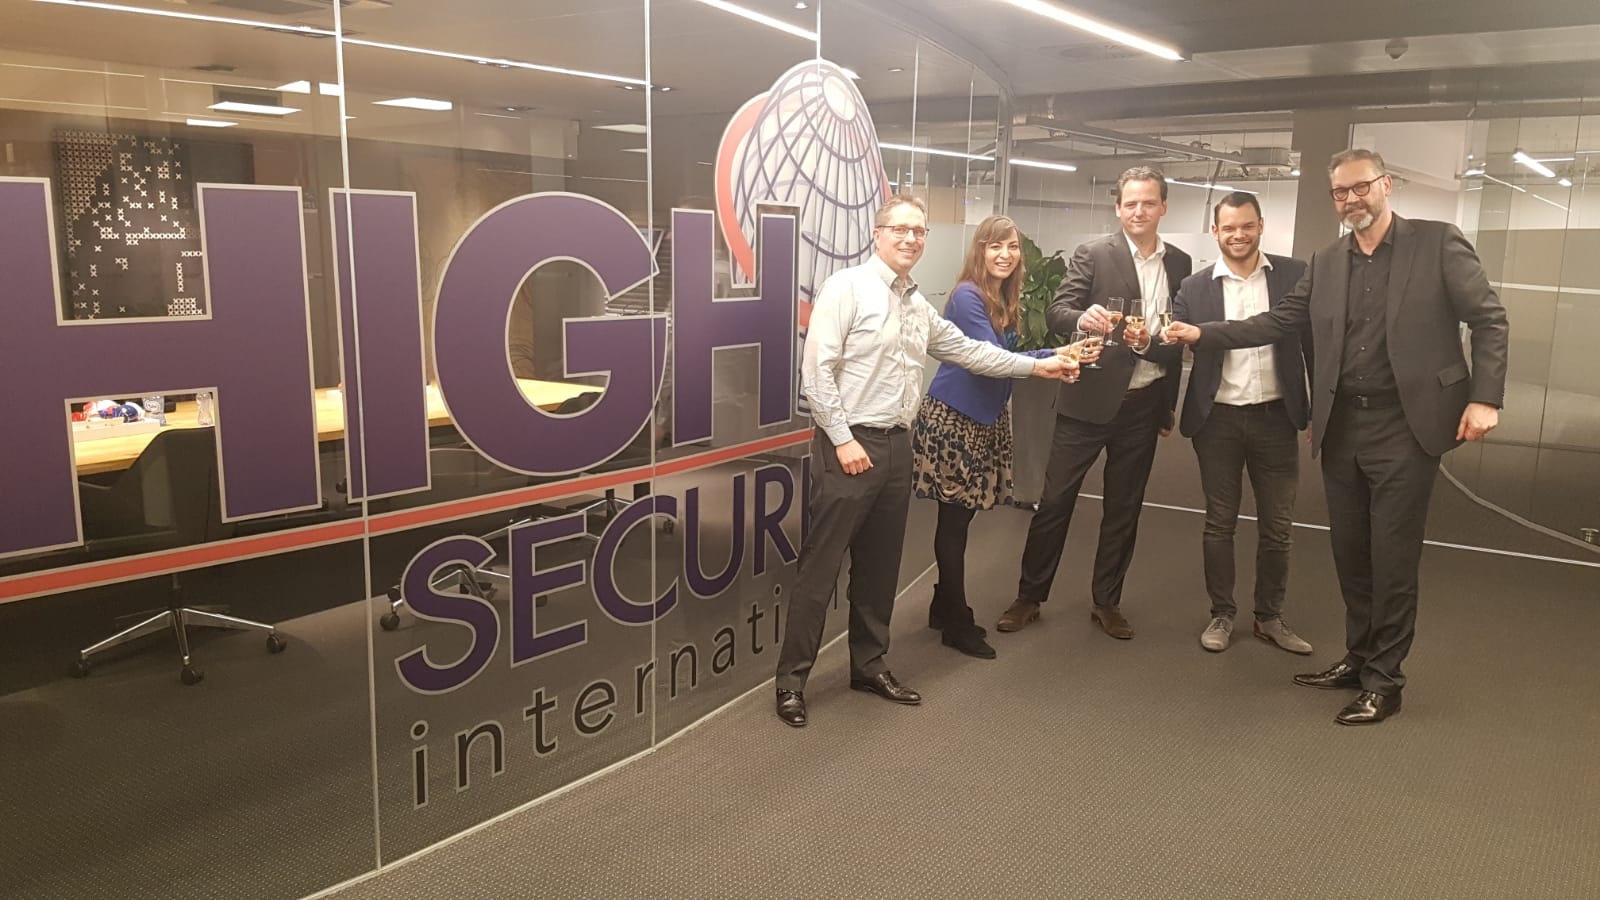 High Security International